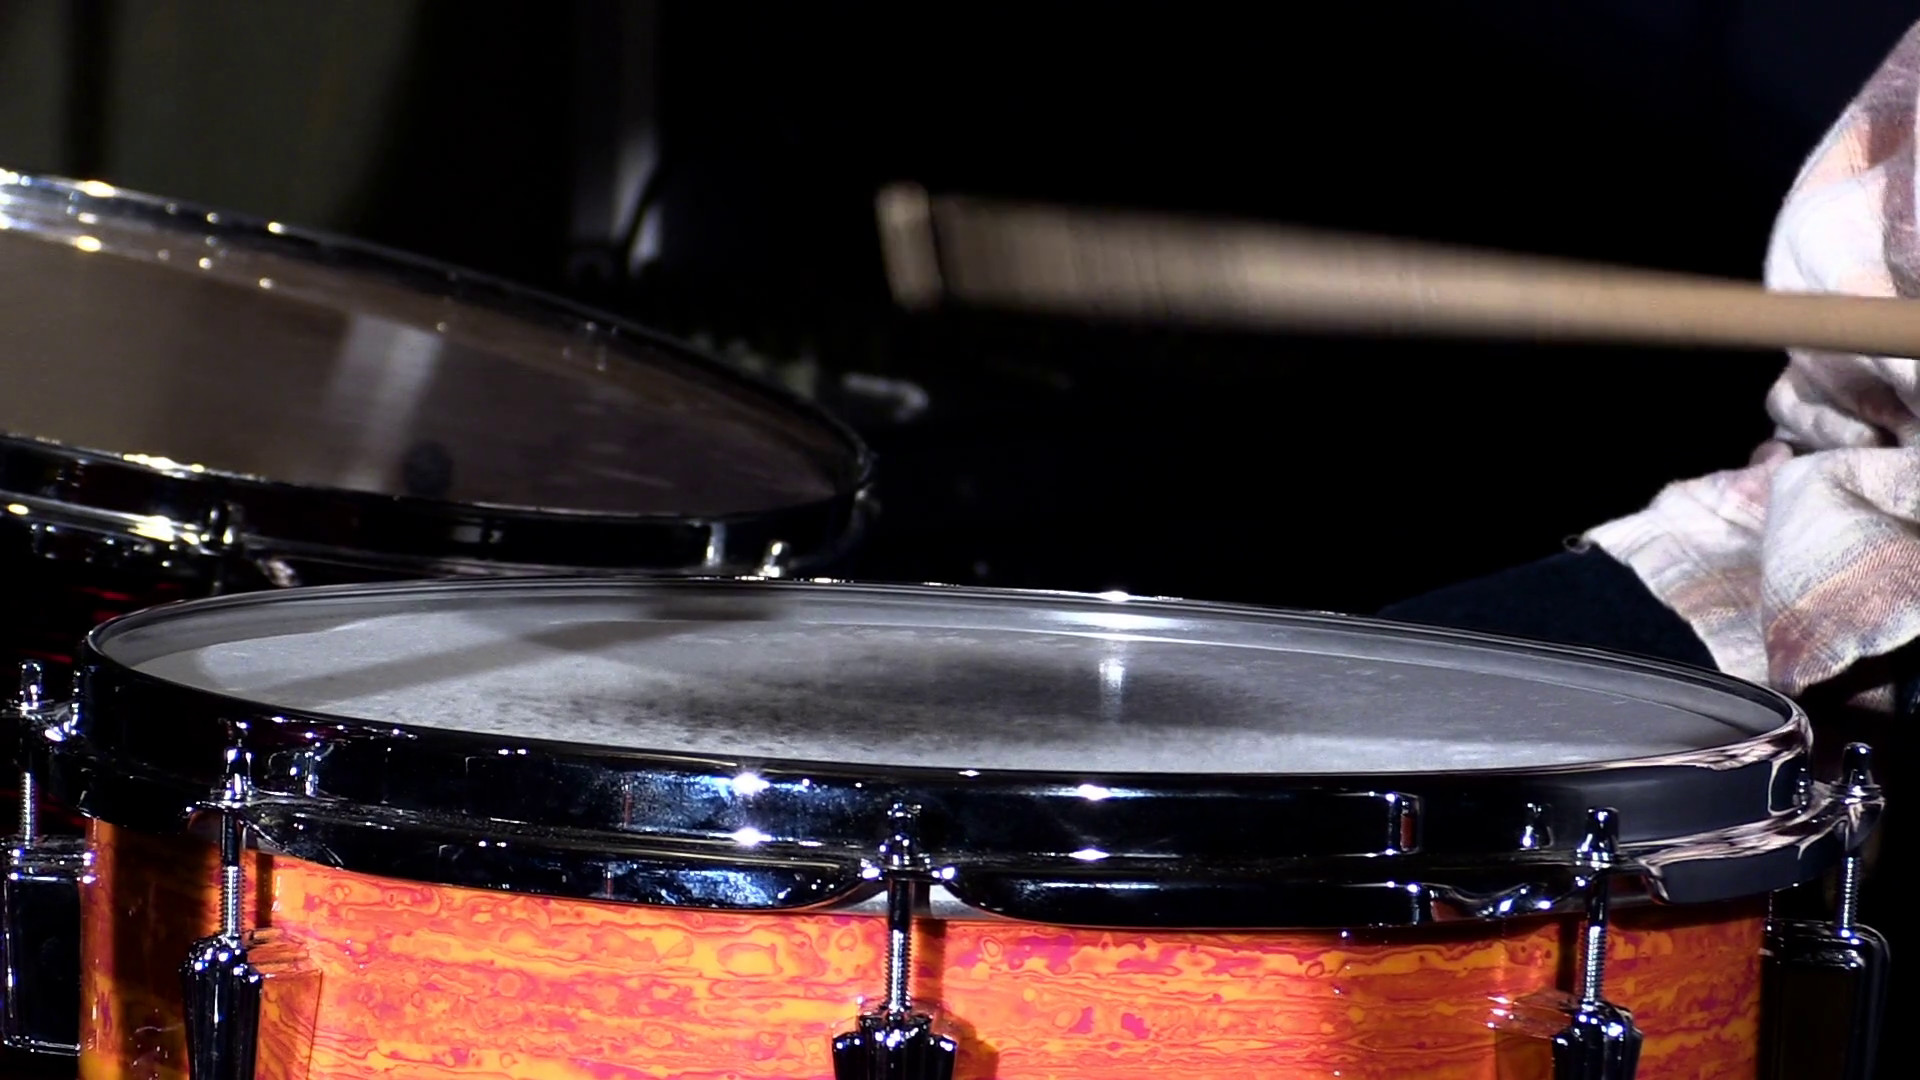 Res: 1920x1080, Slow motion close up shot of drums sticks hitting a snare drum with a tom  drum in the background Stock Video Footage - Videoblocks